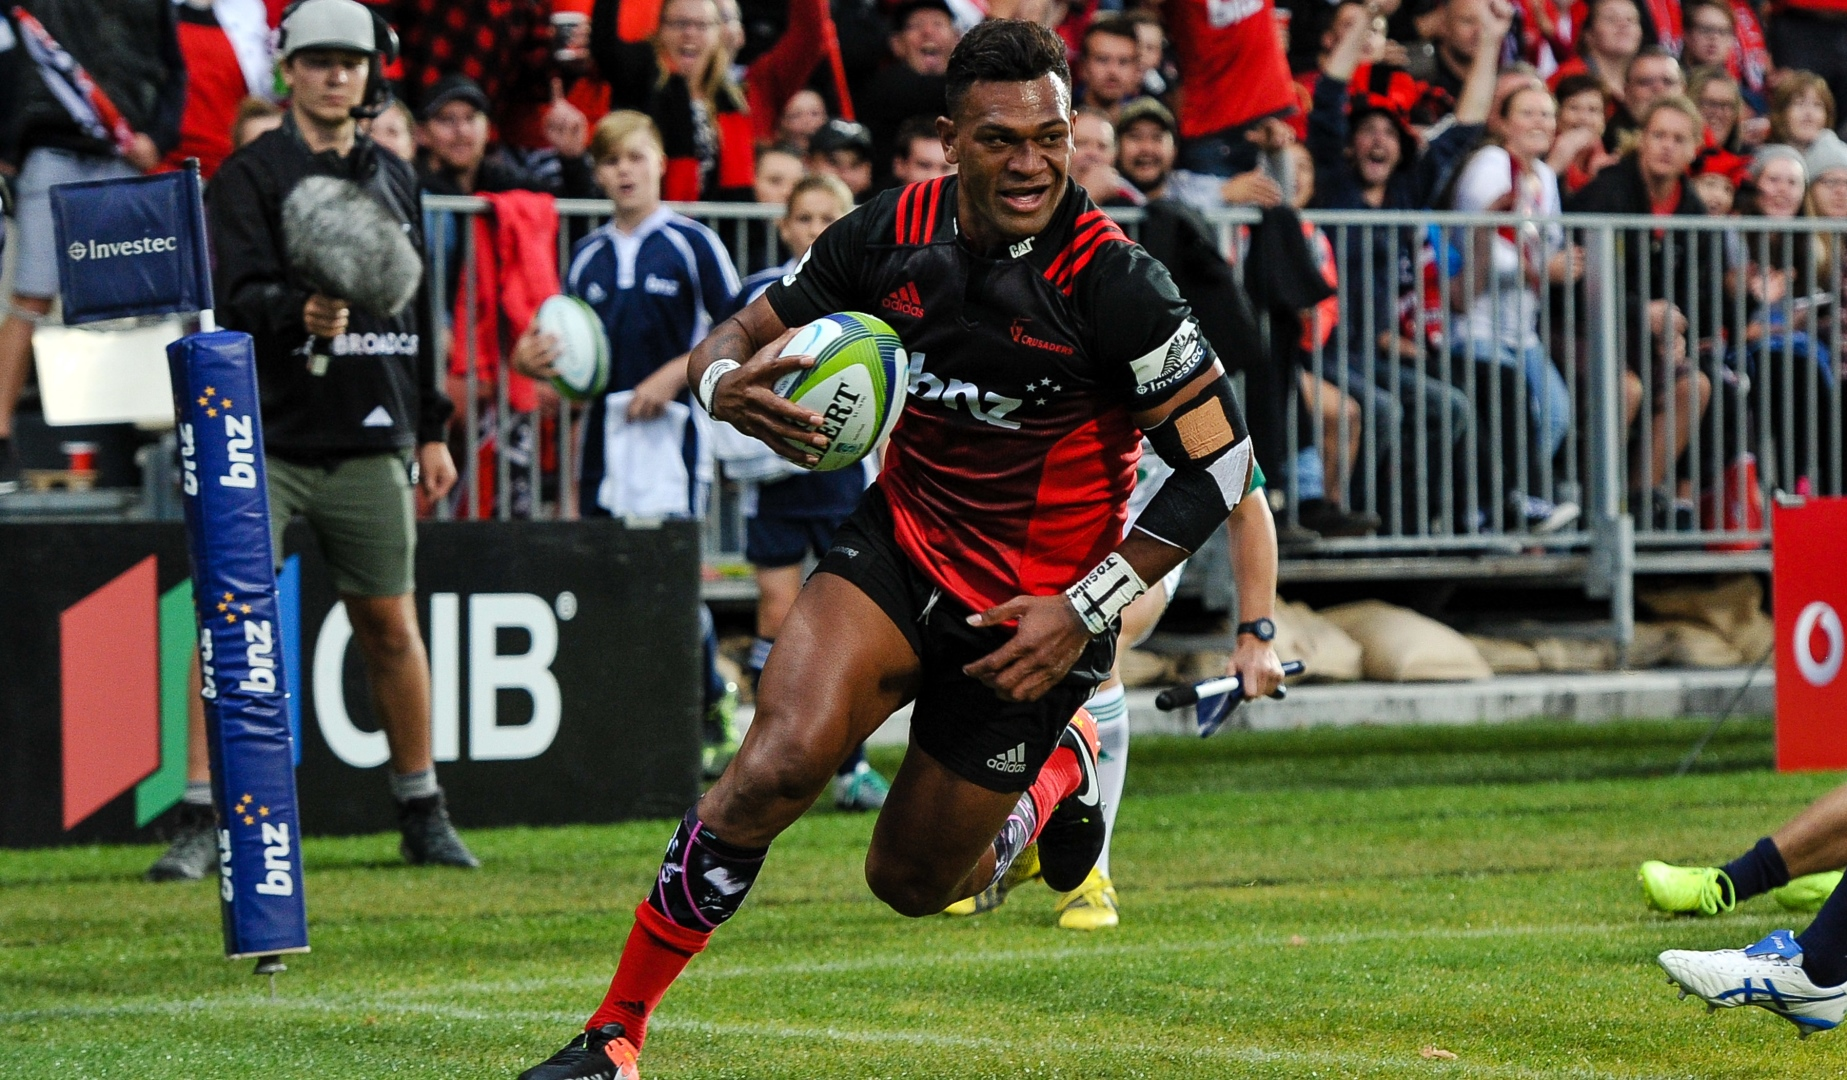 Lions Scout: A perfect ten for the Crusaders